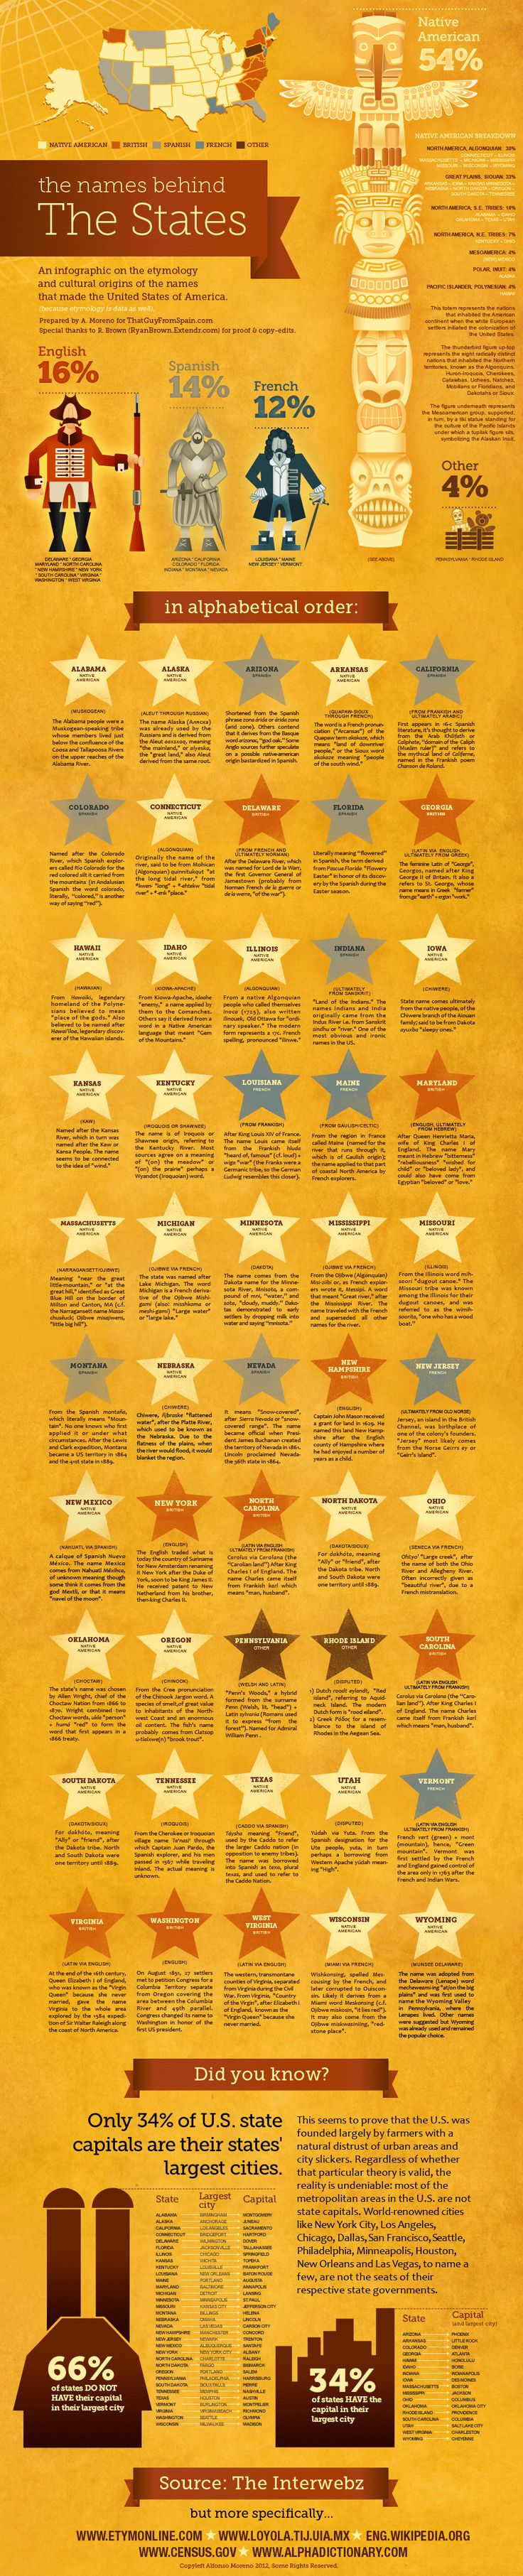 An infographic of the etymology and cultural origins of the names that made the ?United States of America.